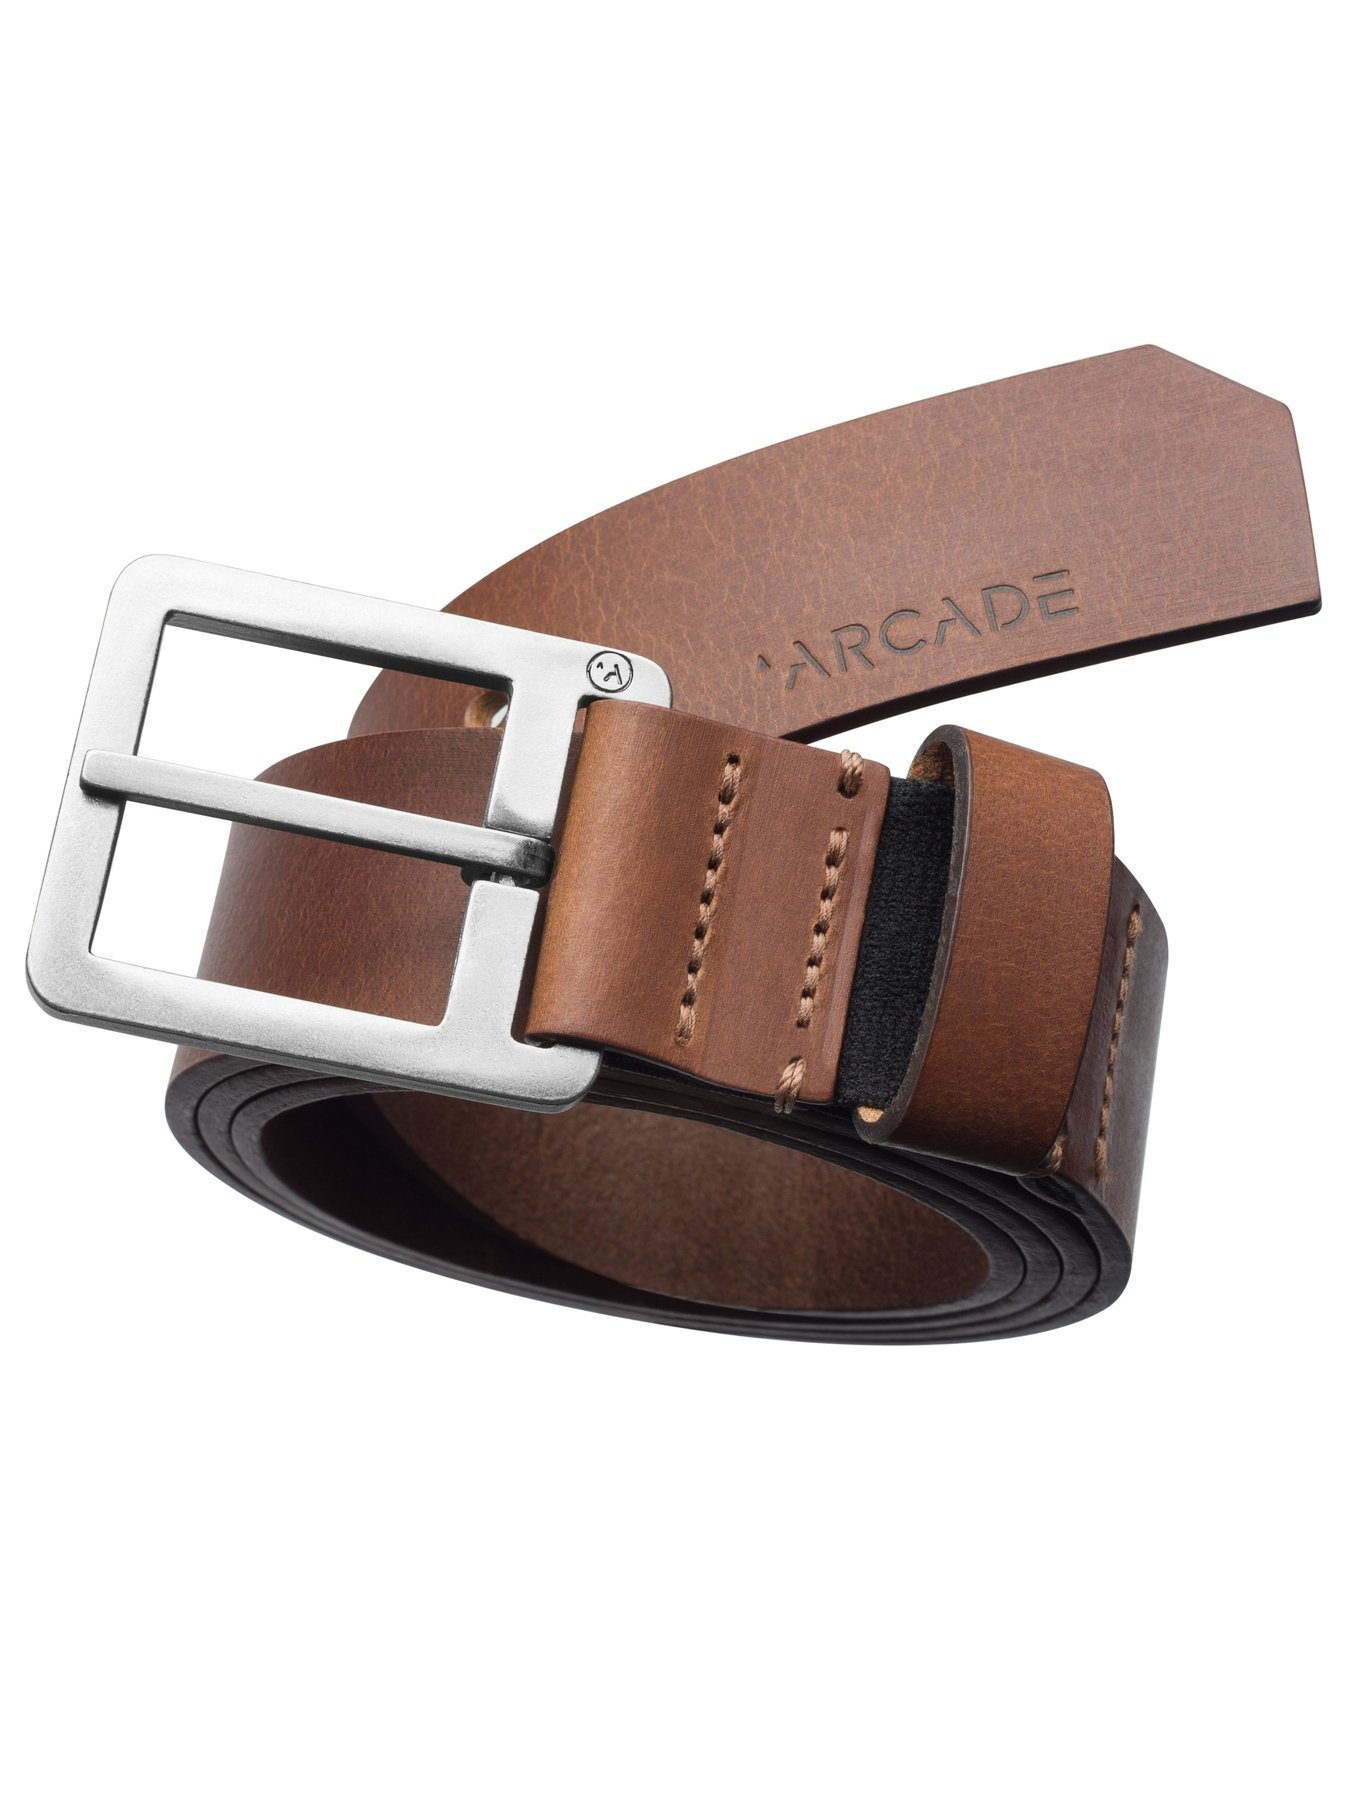 Arcade Belt Co. Arcade - Padre Belt - Medium (Brown)